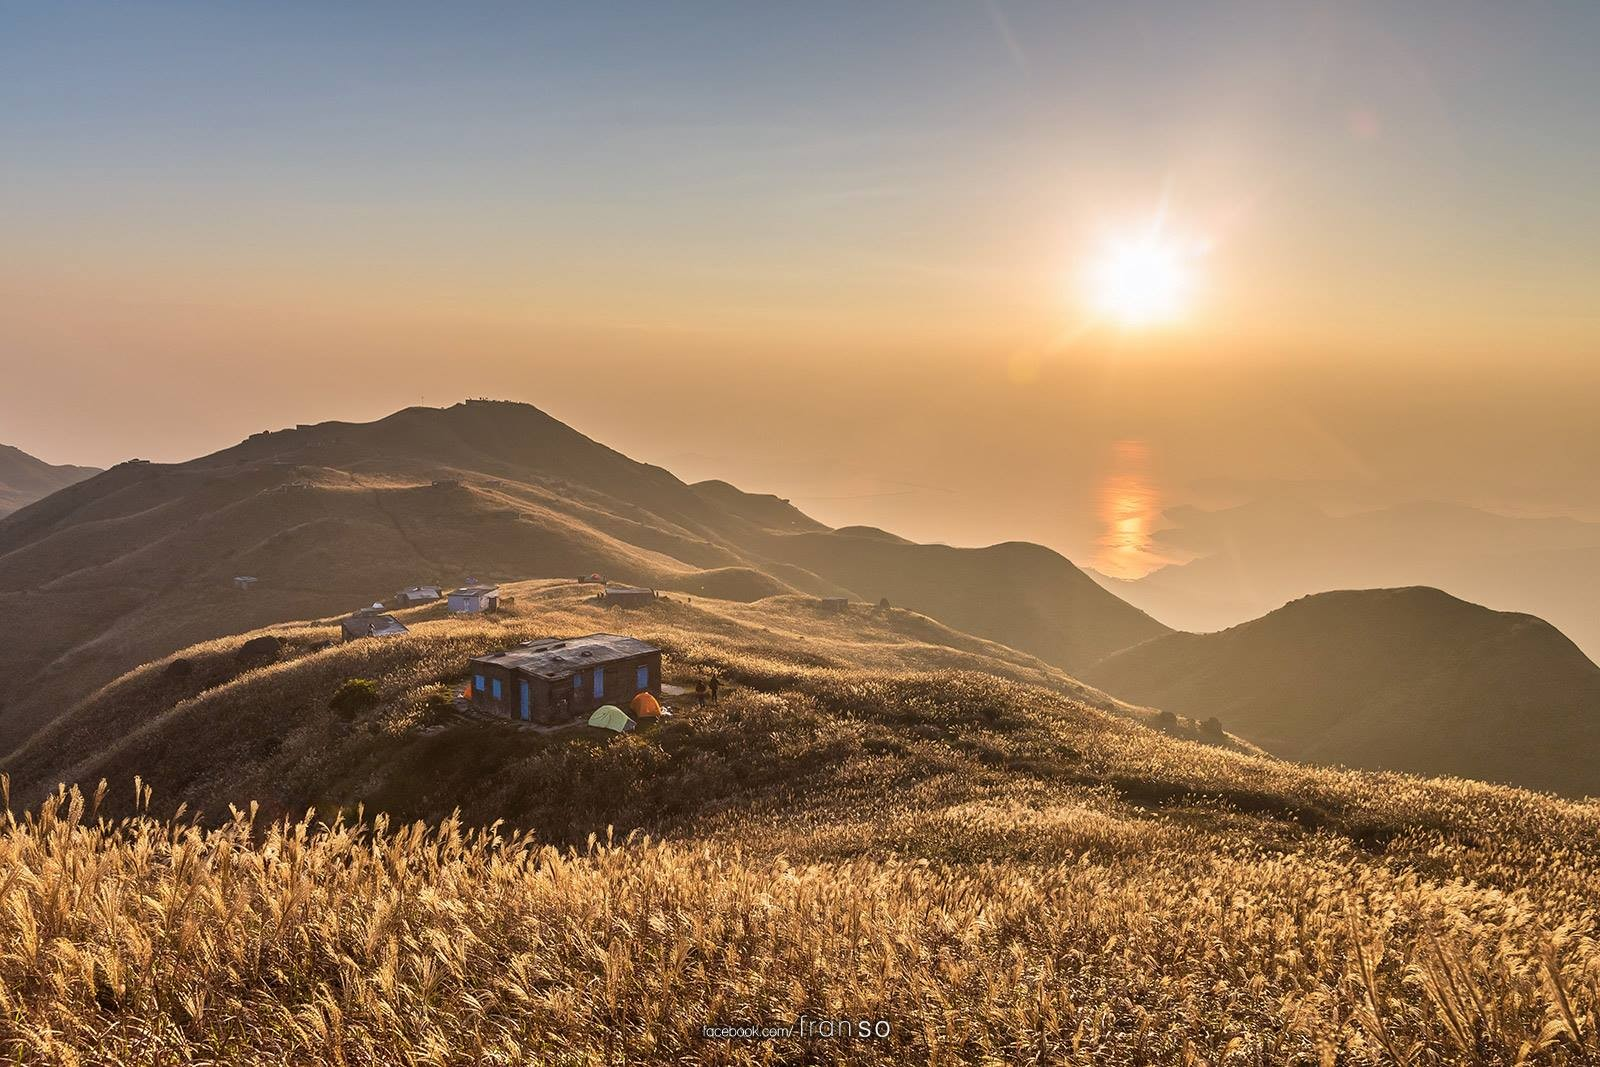 Landscape | Hong Kong | Gold Sunrise  | Golden Grass